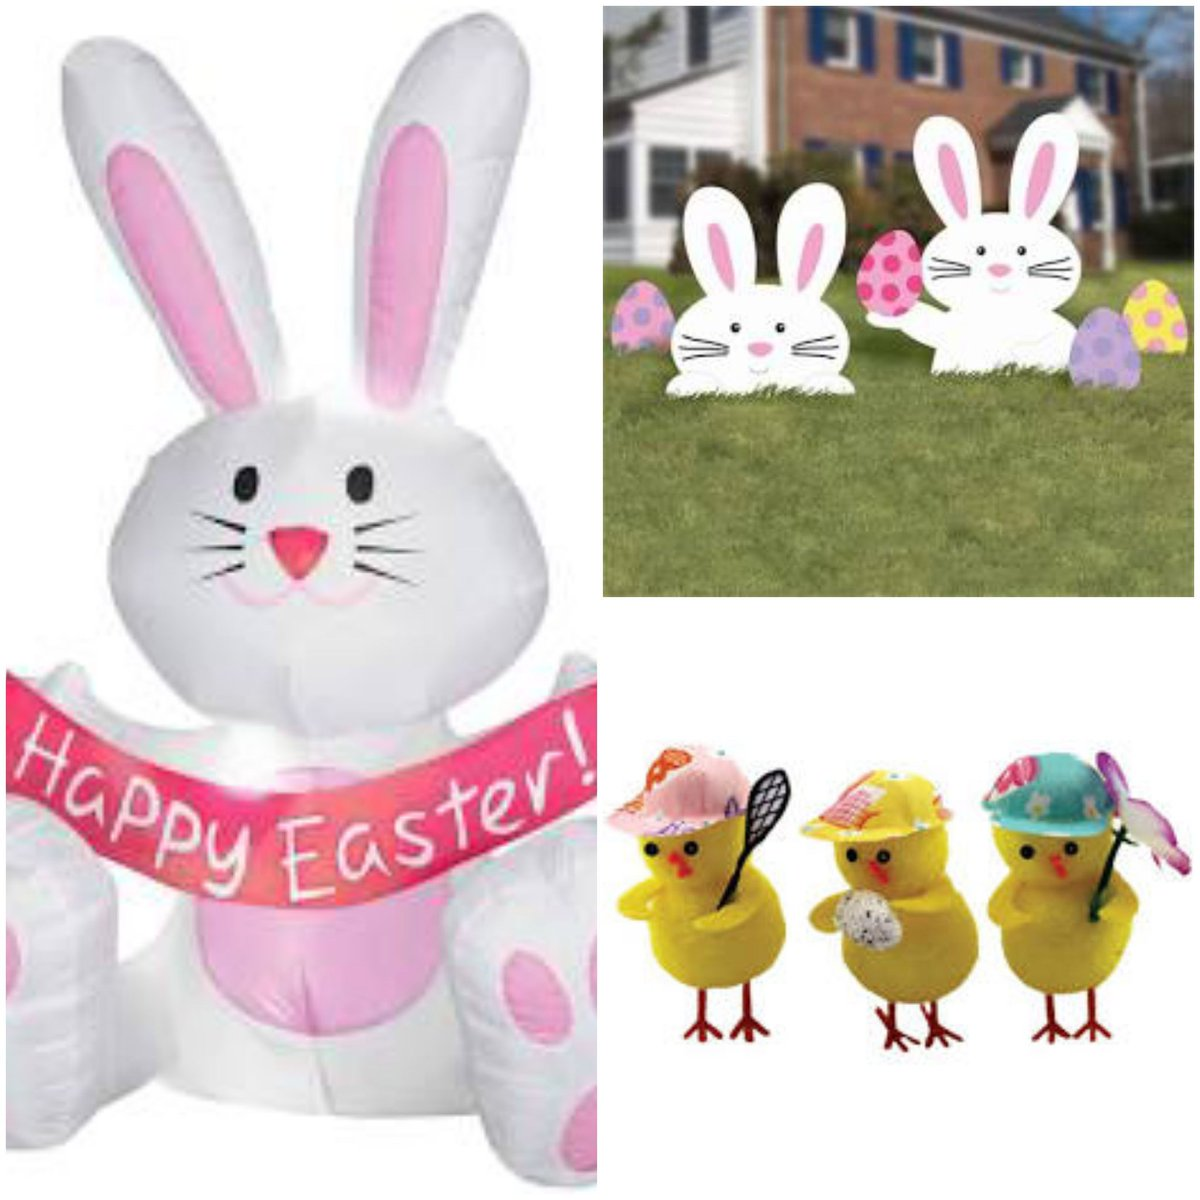 Time to look for our Easter decorations for our Beatties Fun Easter Raffle in aid of @joinourboys We are going to have fun whilst you have a great chance to win awesome prizes, 38 of them malcolmthompson10@outlook.com Have fun and help the brothers have an enjoyable Easter!!